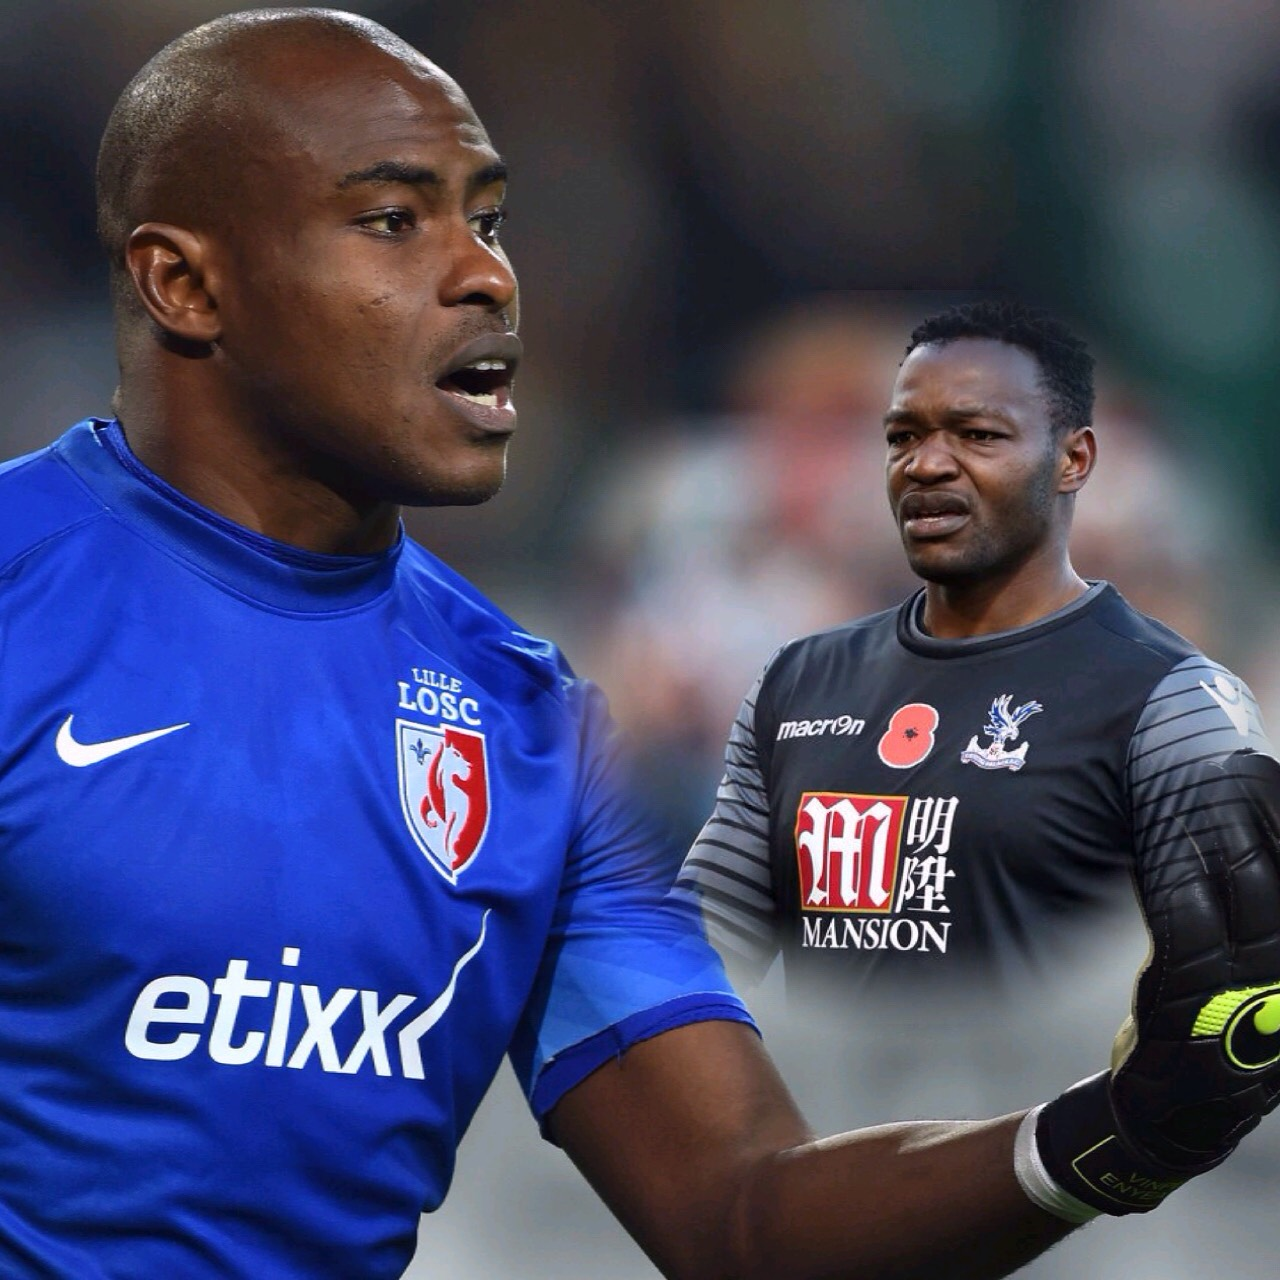 Bielsa Targets Mandanda As Enyeama's Backup At Lille